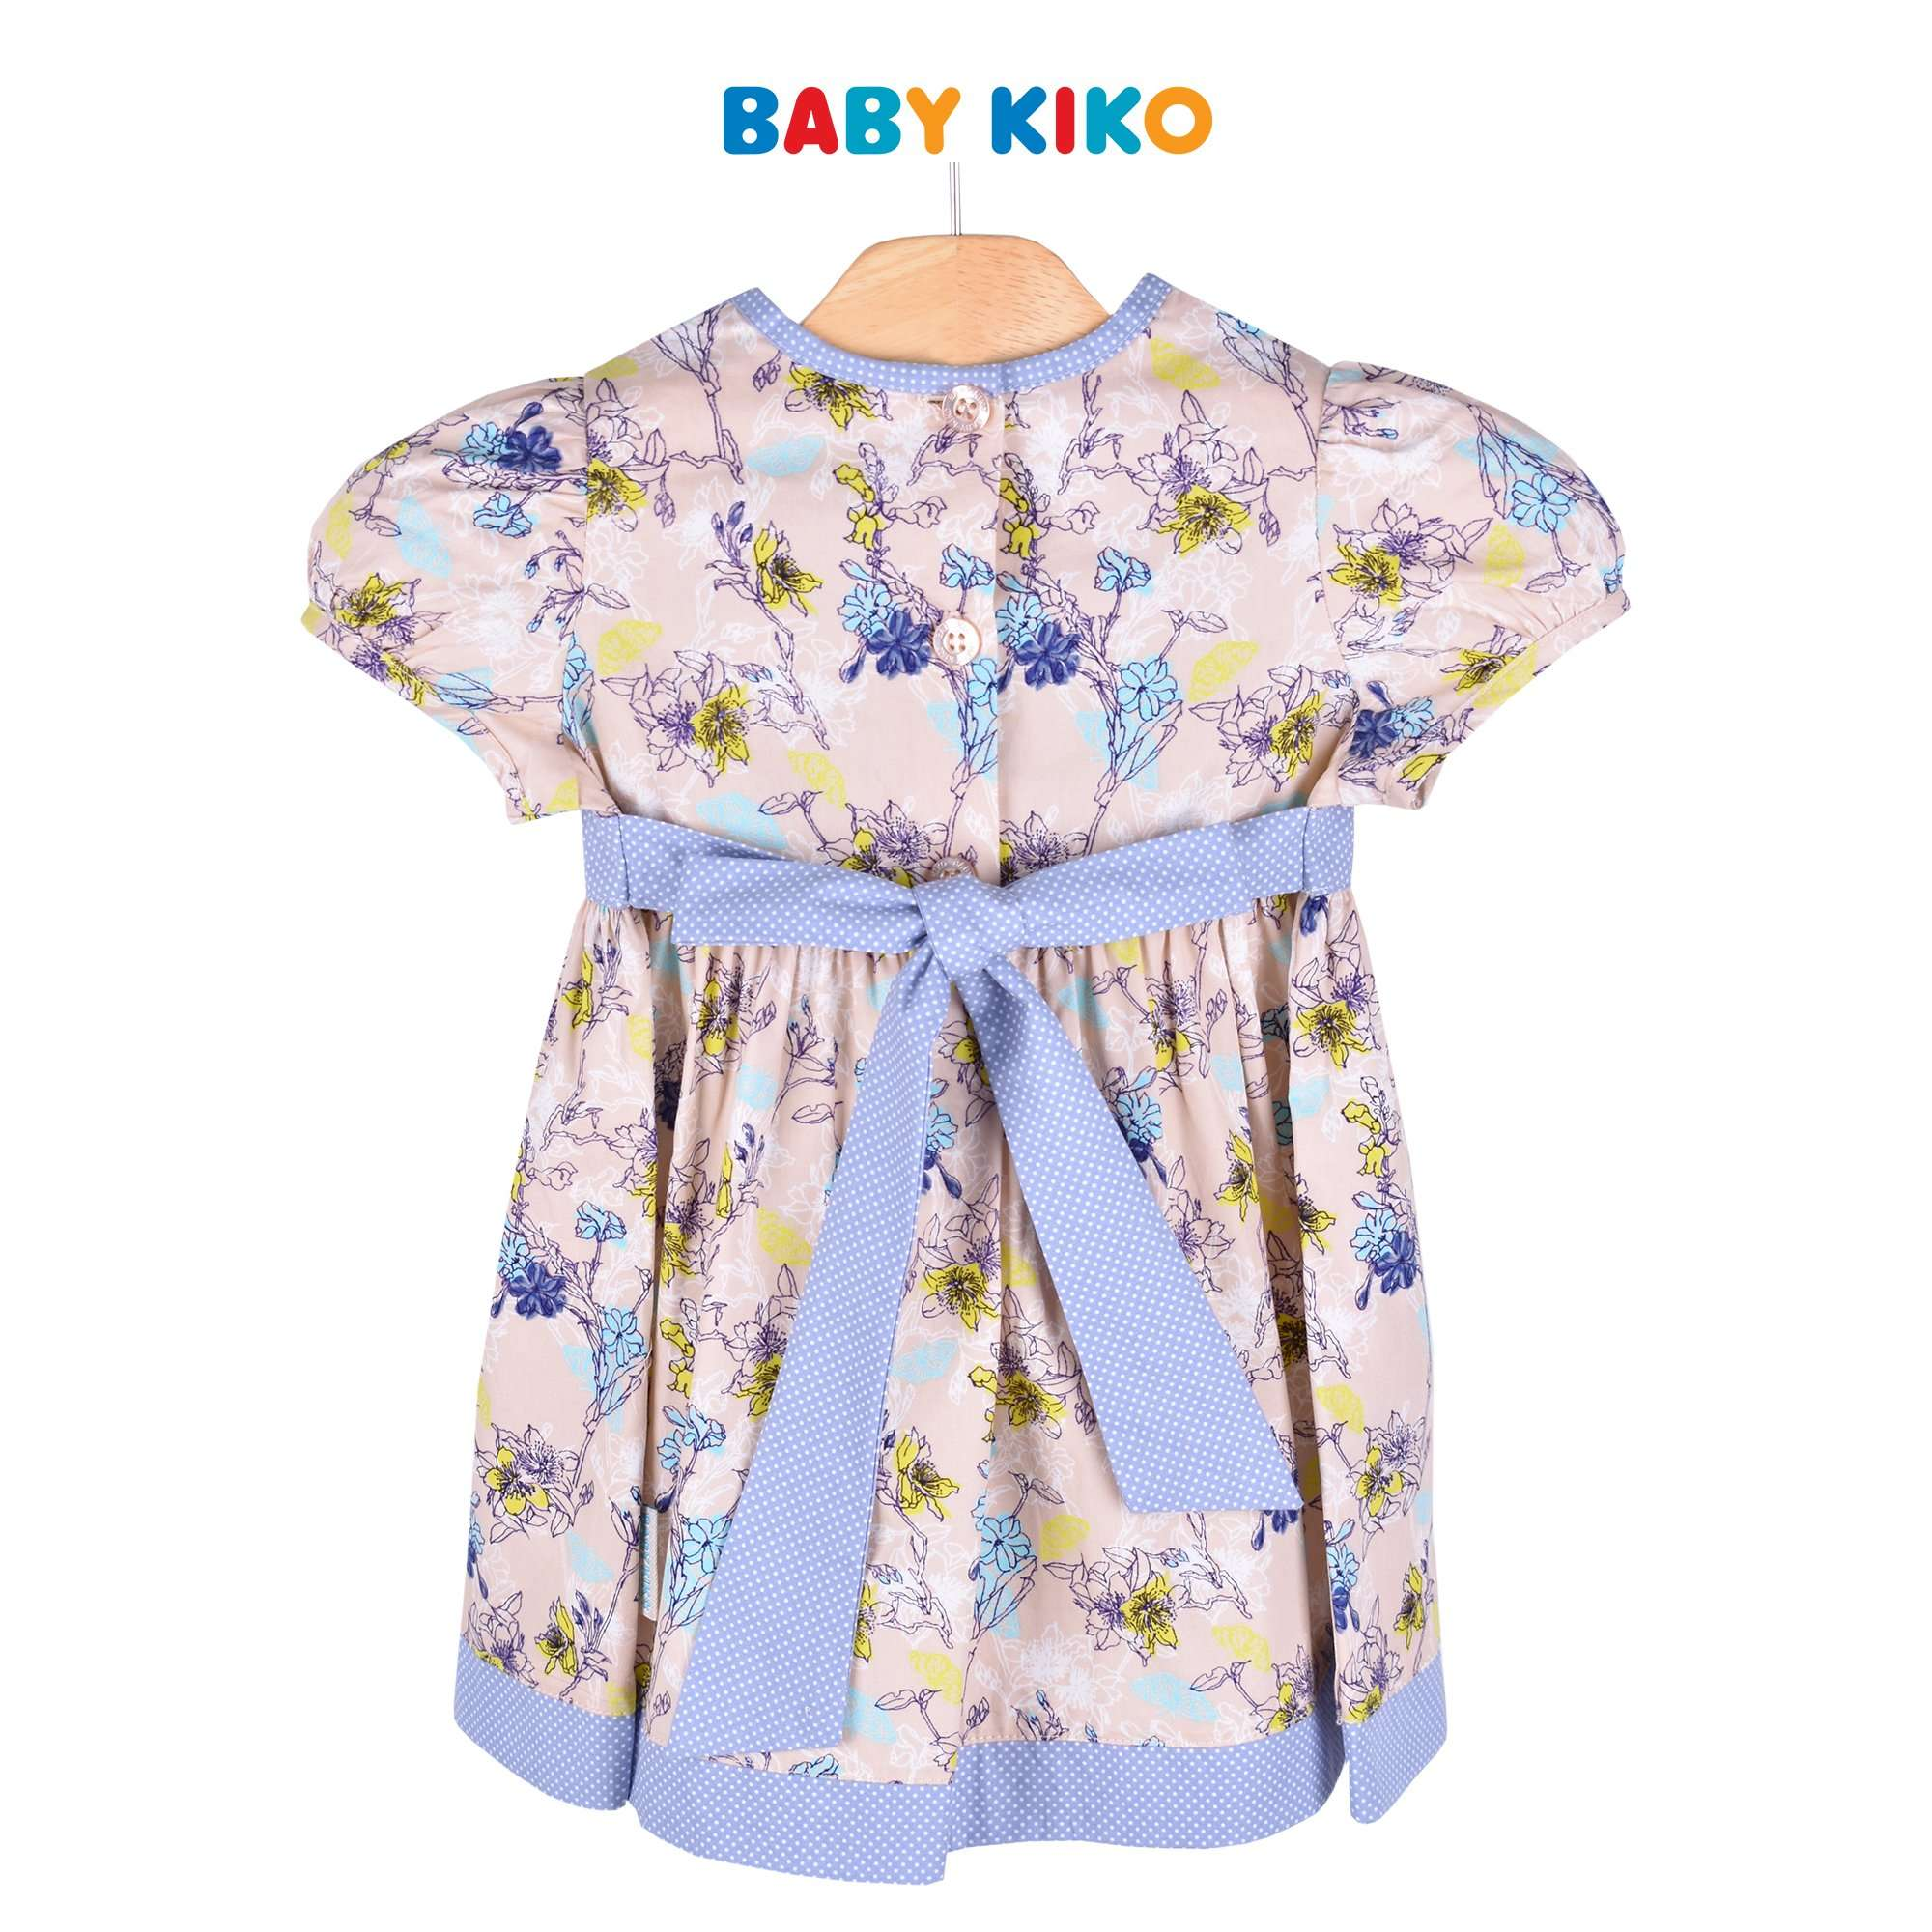 Baby KIKO Toddler Girl Short Sleeve Dress Sirocco 315128-312 : Buy Baby KIKO online at CMG.MY